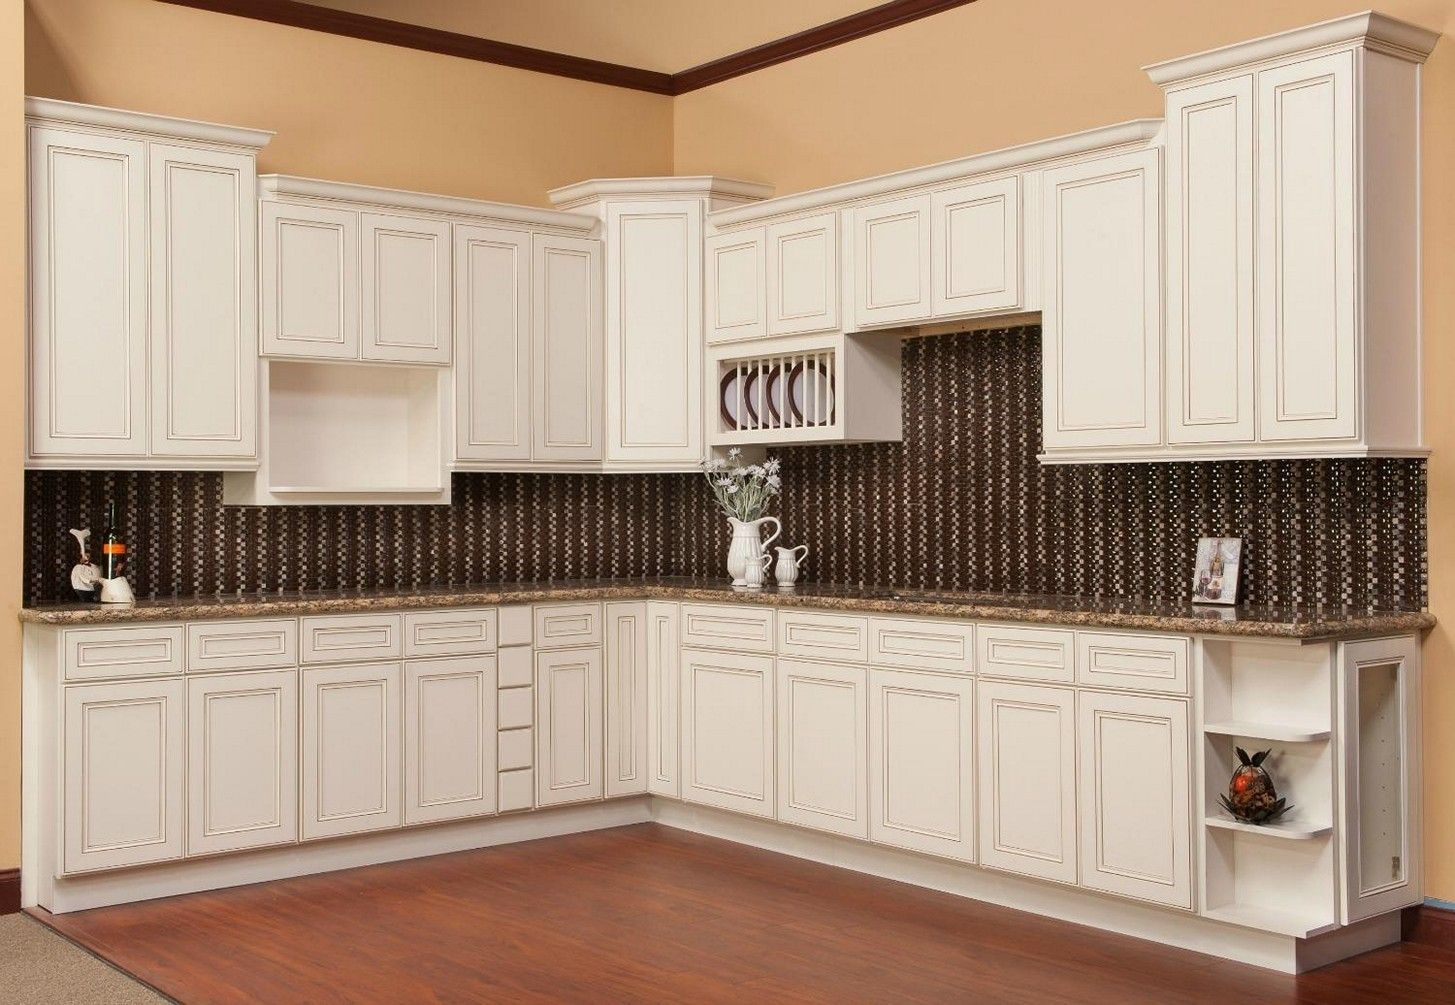 furnitures home and full cabinet of antique sets concept white in size vintage impression cabinets traditional kitchen